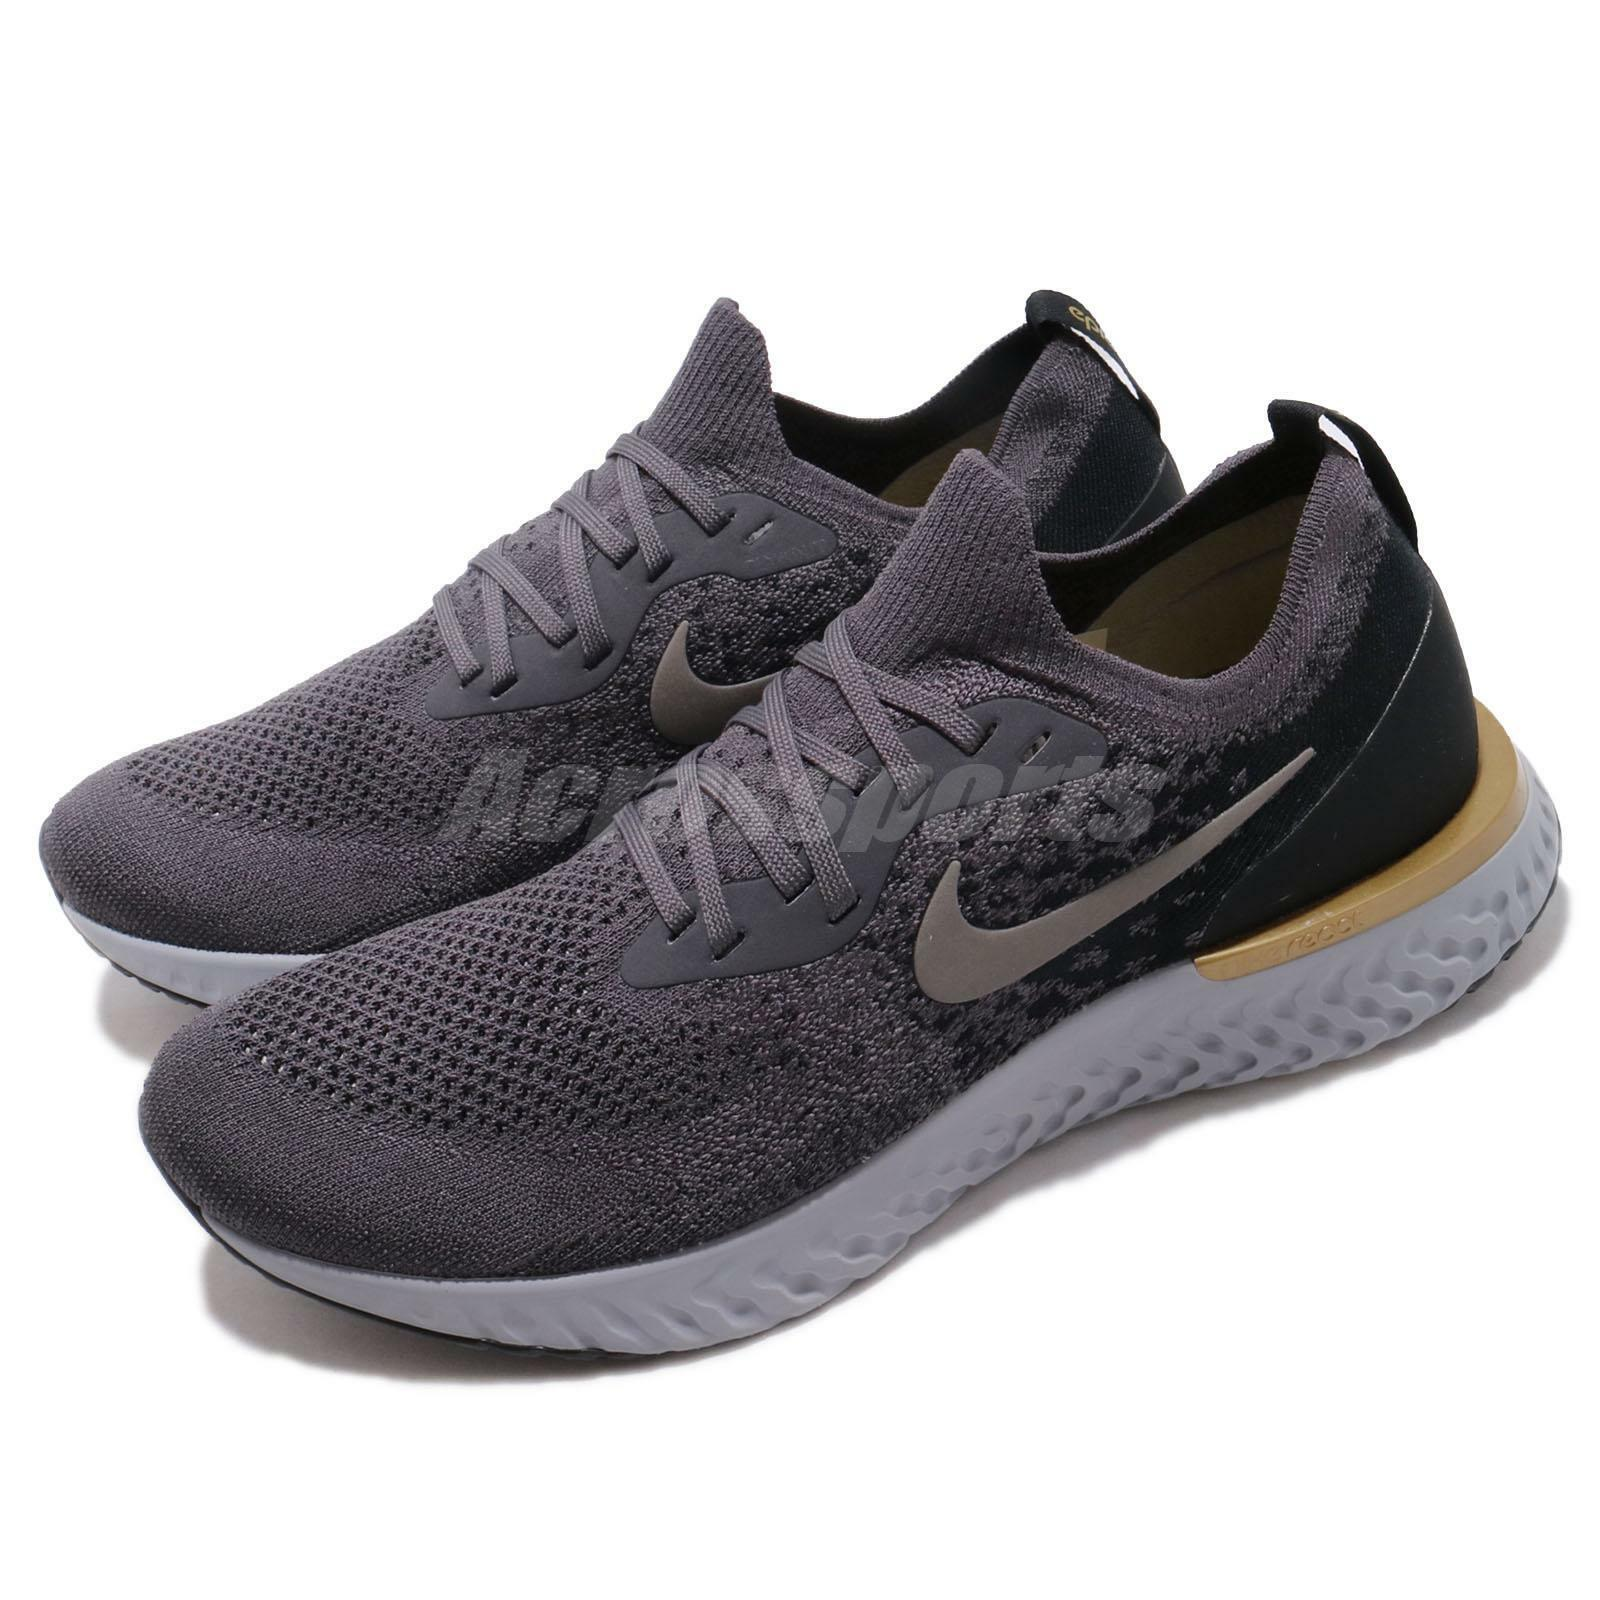 Nike Epic React Flyknit Grey Pewter Black Mens Running shoes AQ0067-009